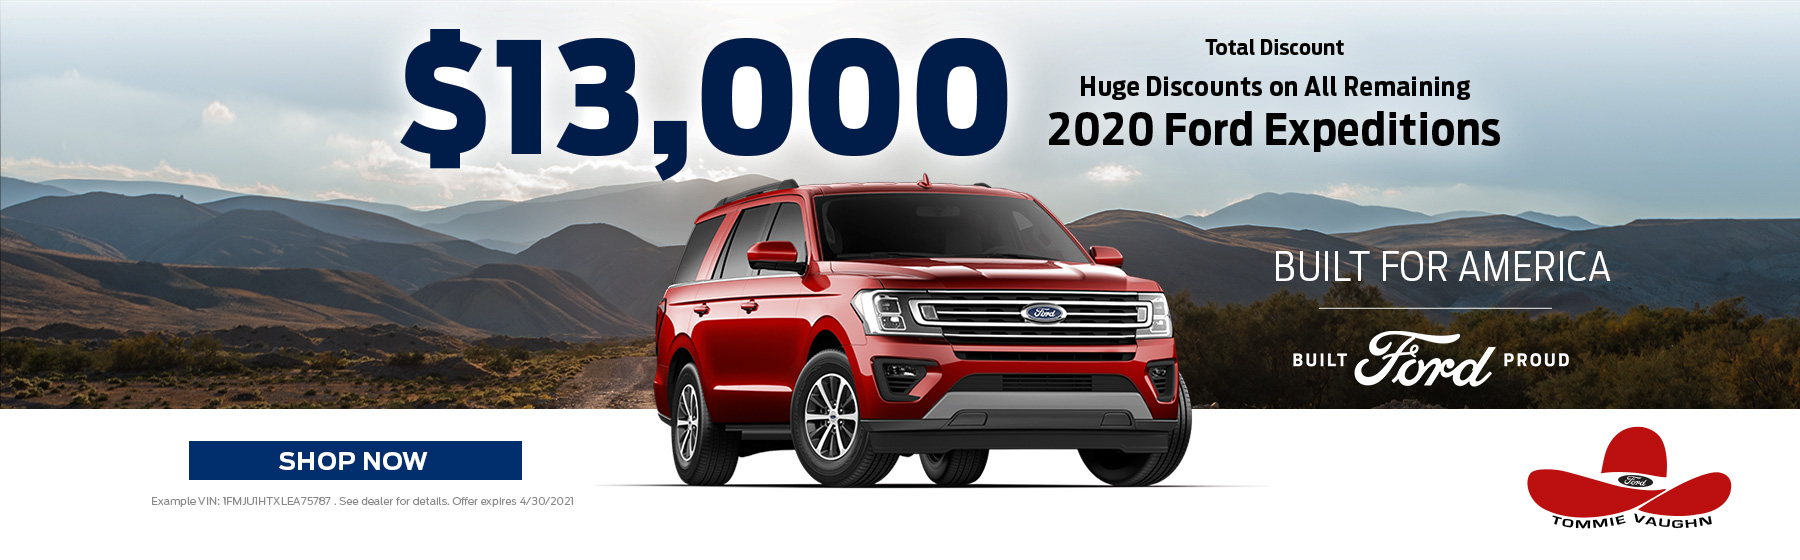 2020 Ford Expedition Offer